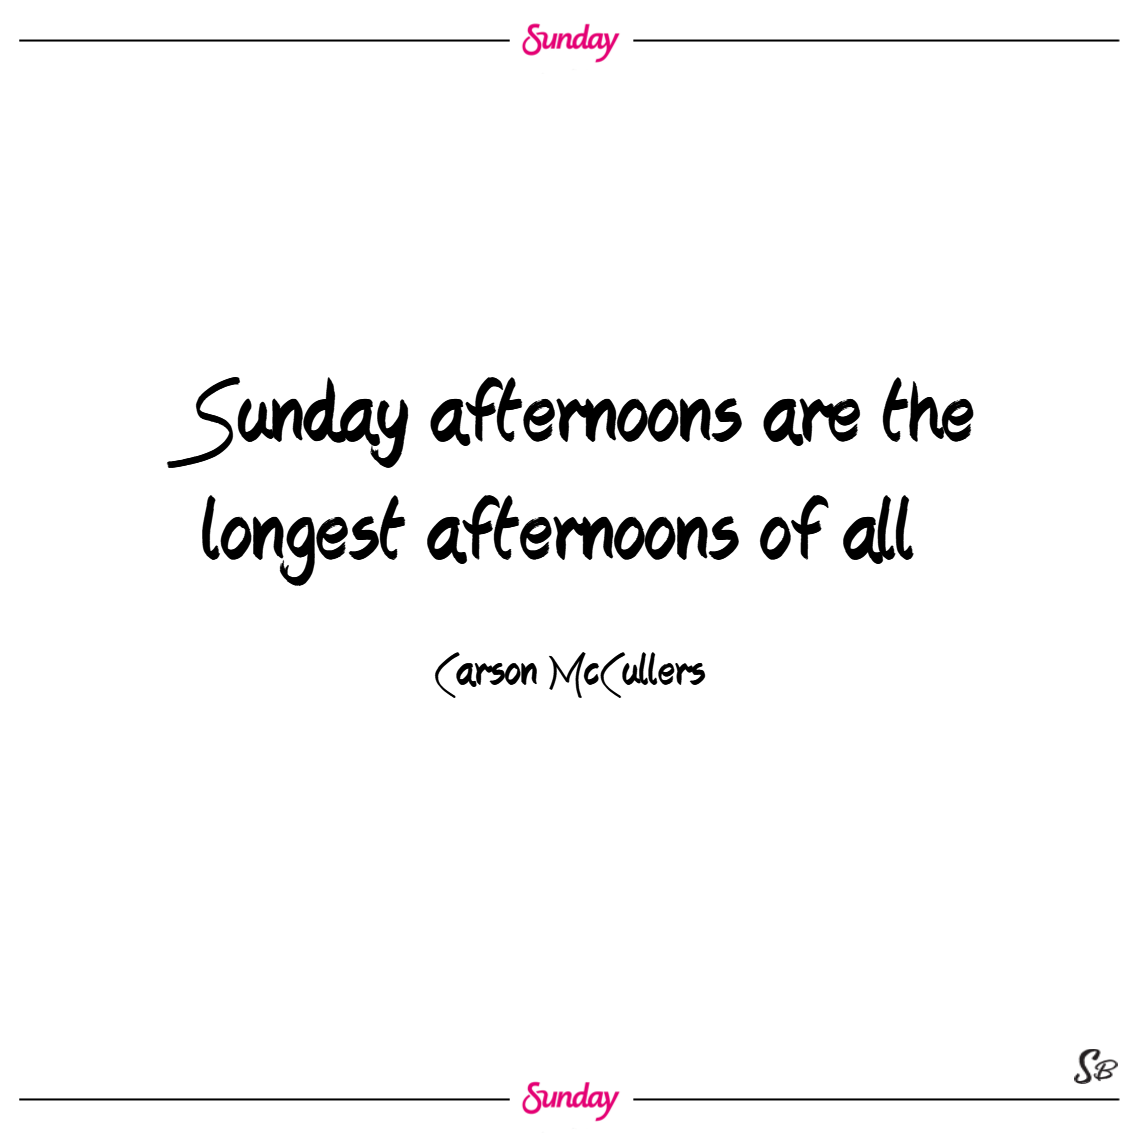 Sunday afternoons are the longest afternoons of all ... – carson mccullers